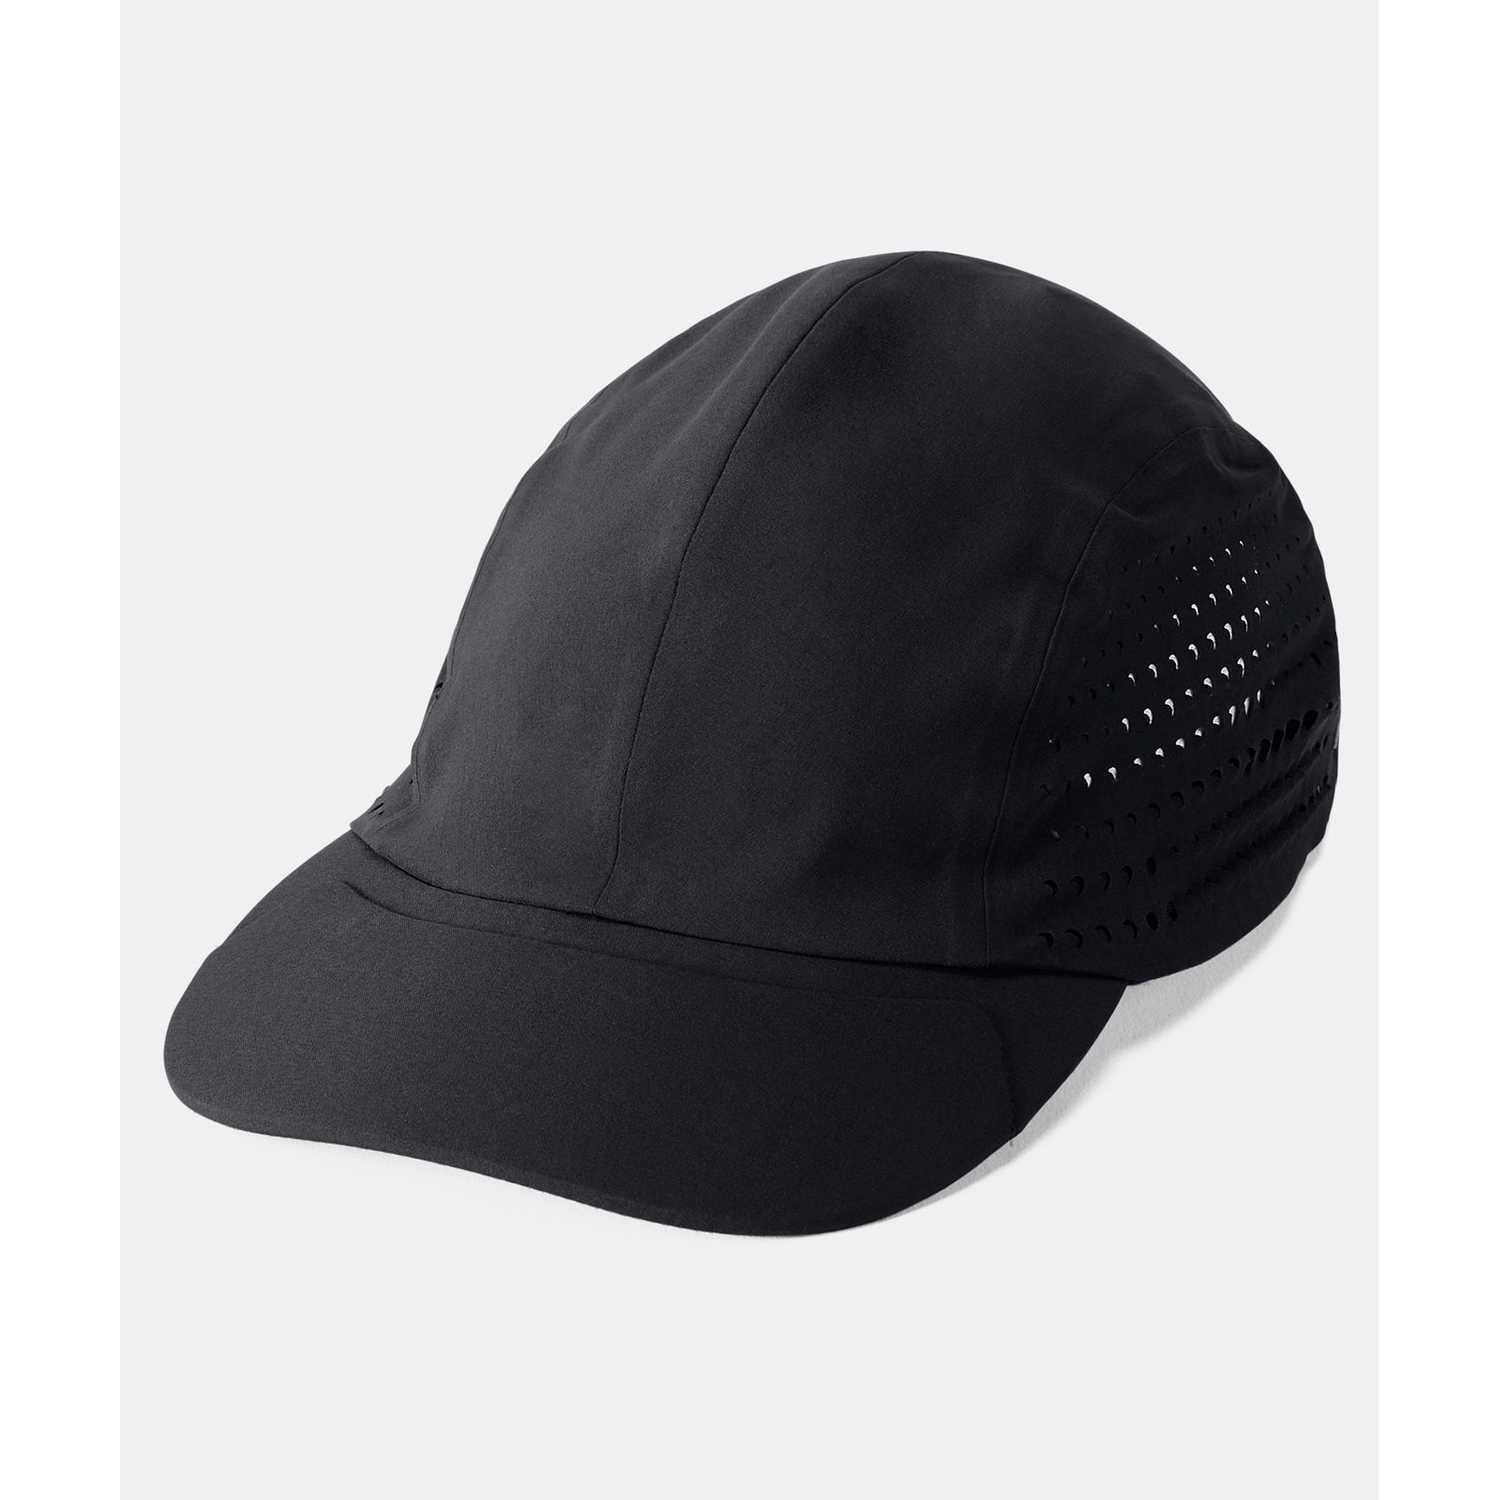 Deportivo de Mujer Under Armour NEGRO / GRIS pinnacle train cap